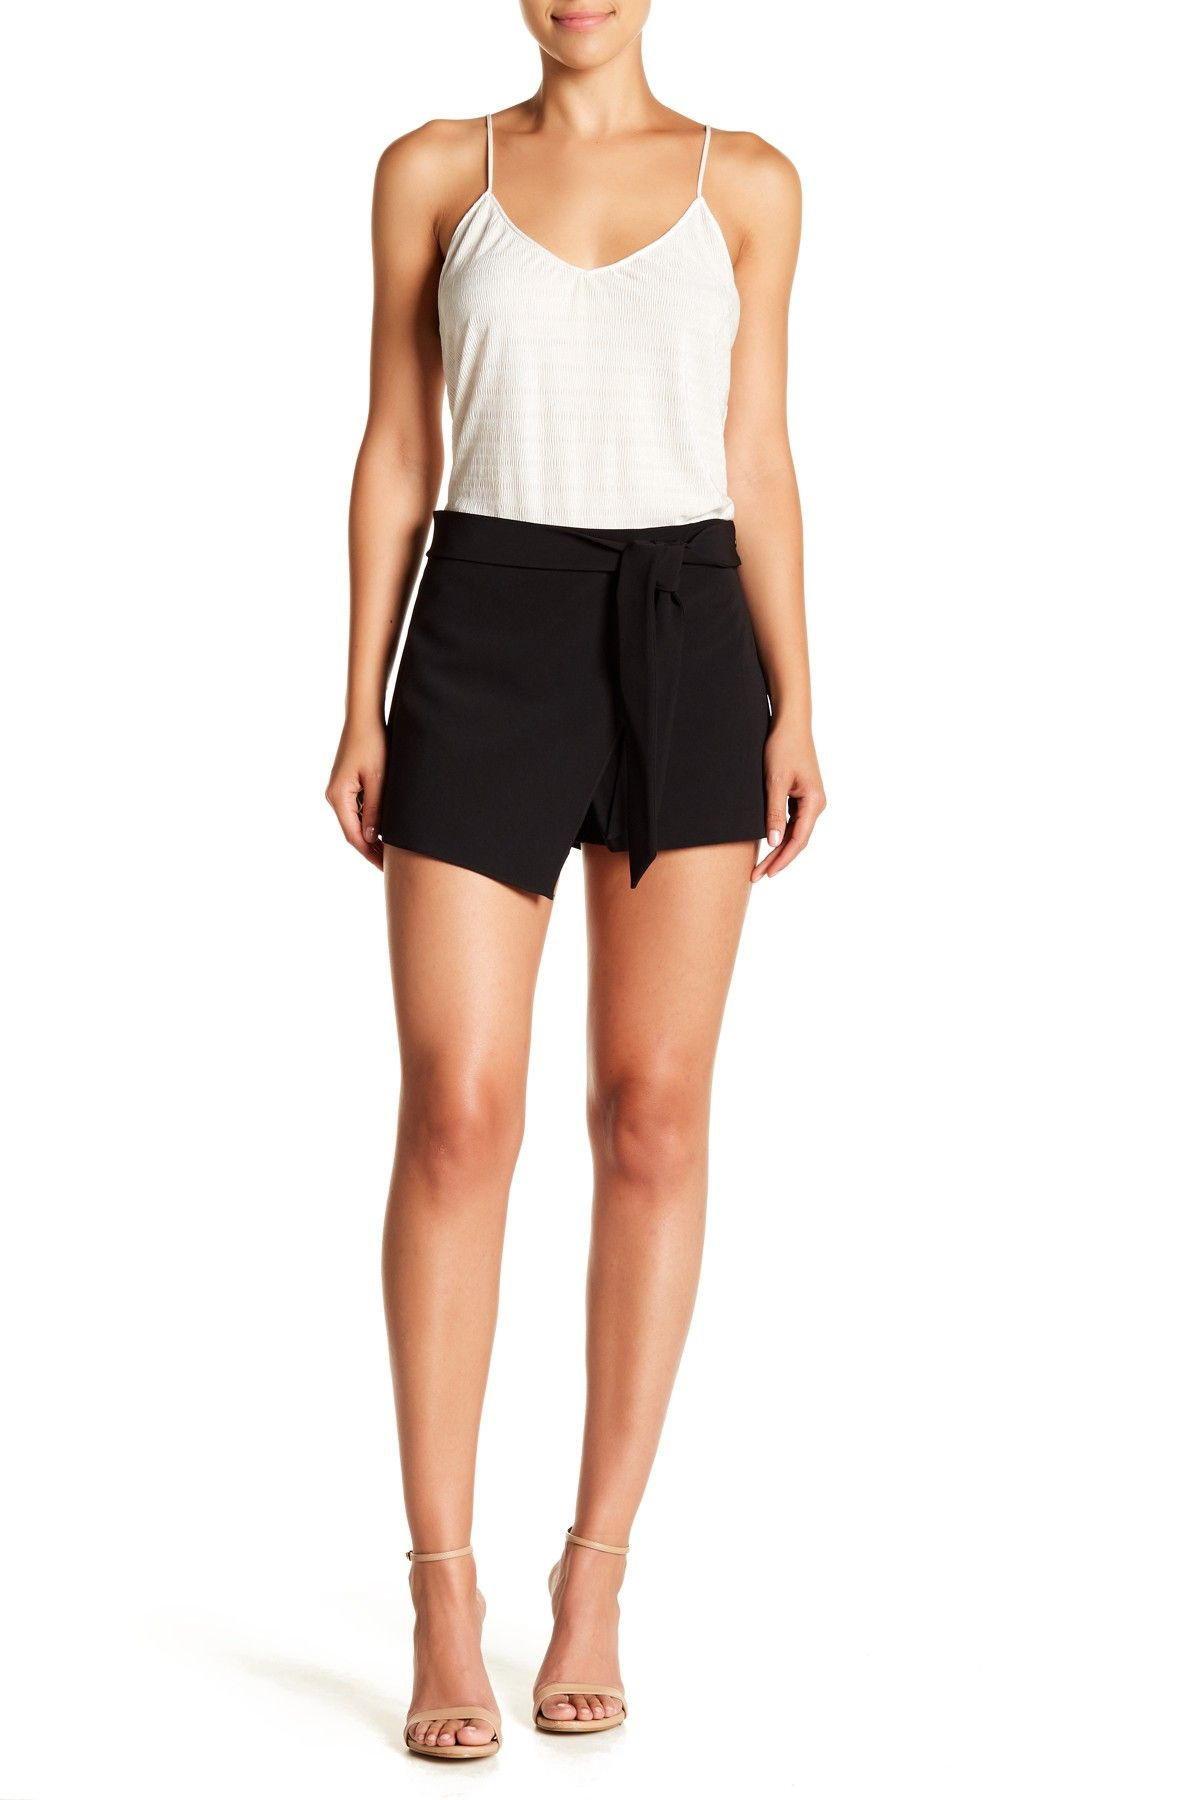 Parker High Waist Skort is now 68 off. Free Shipping on